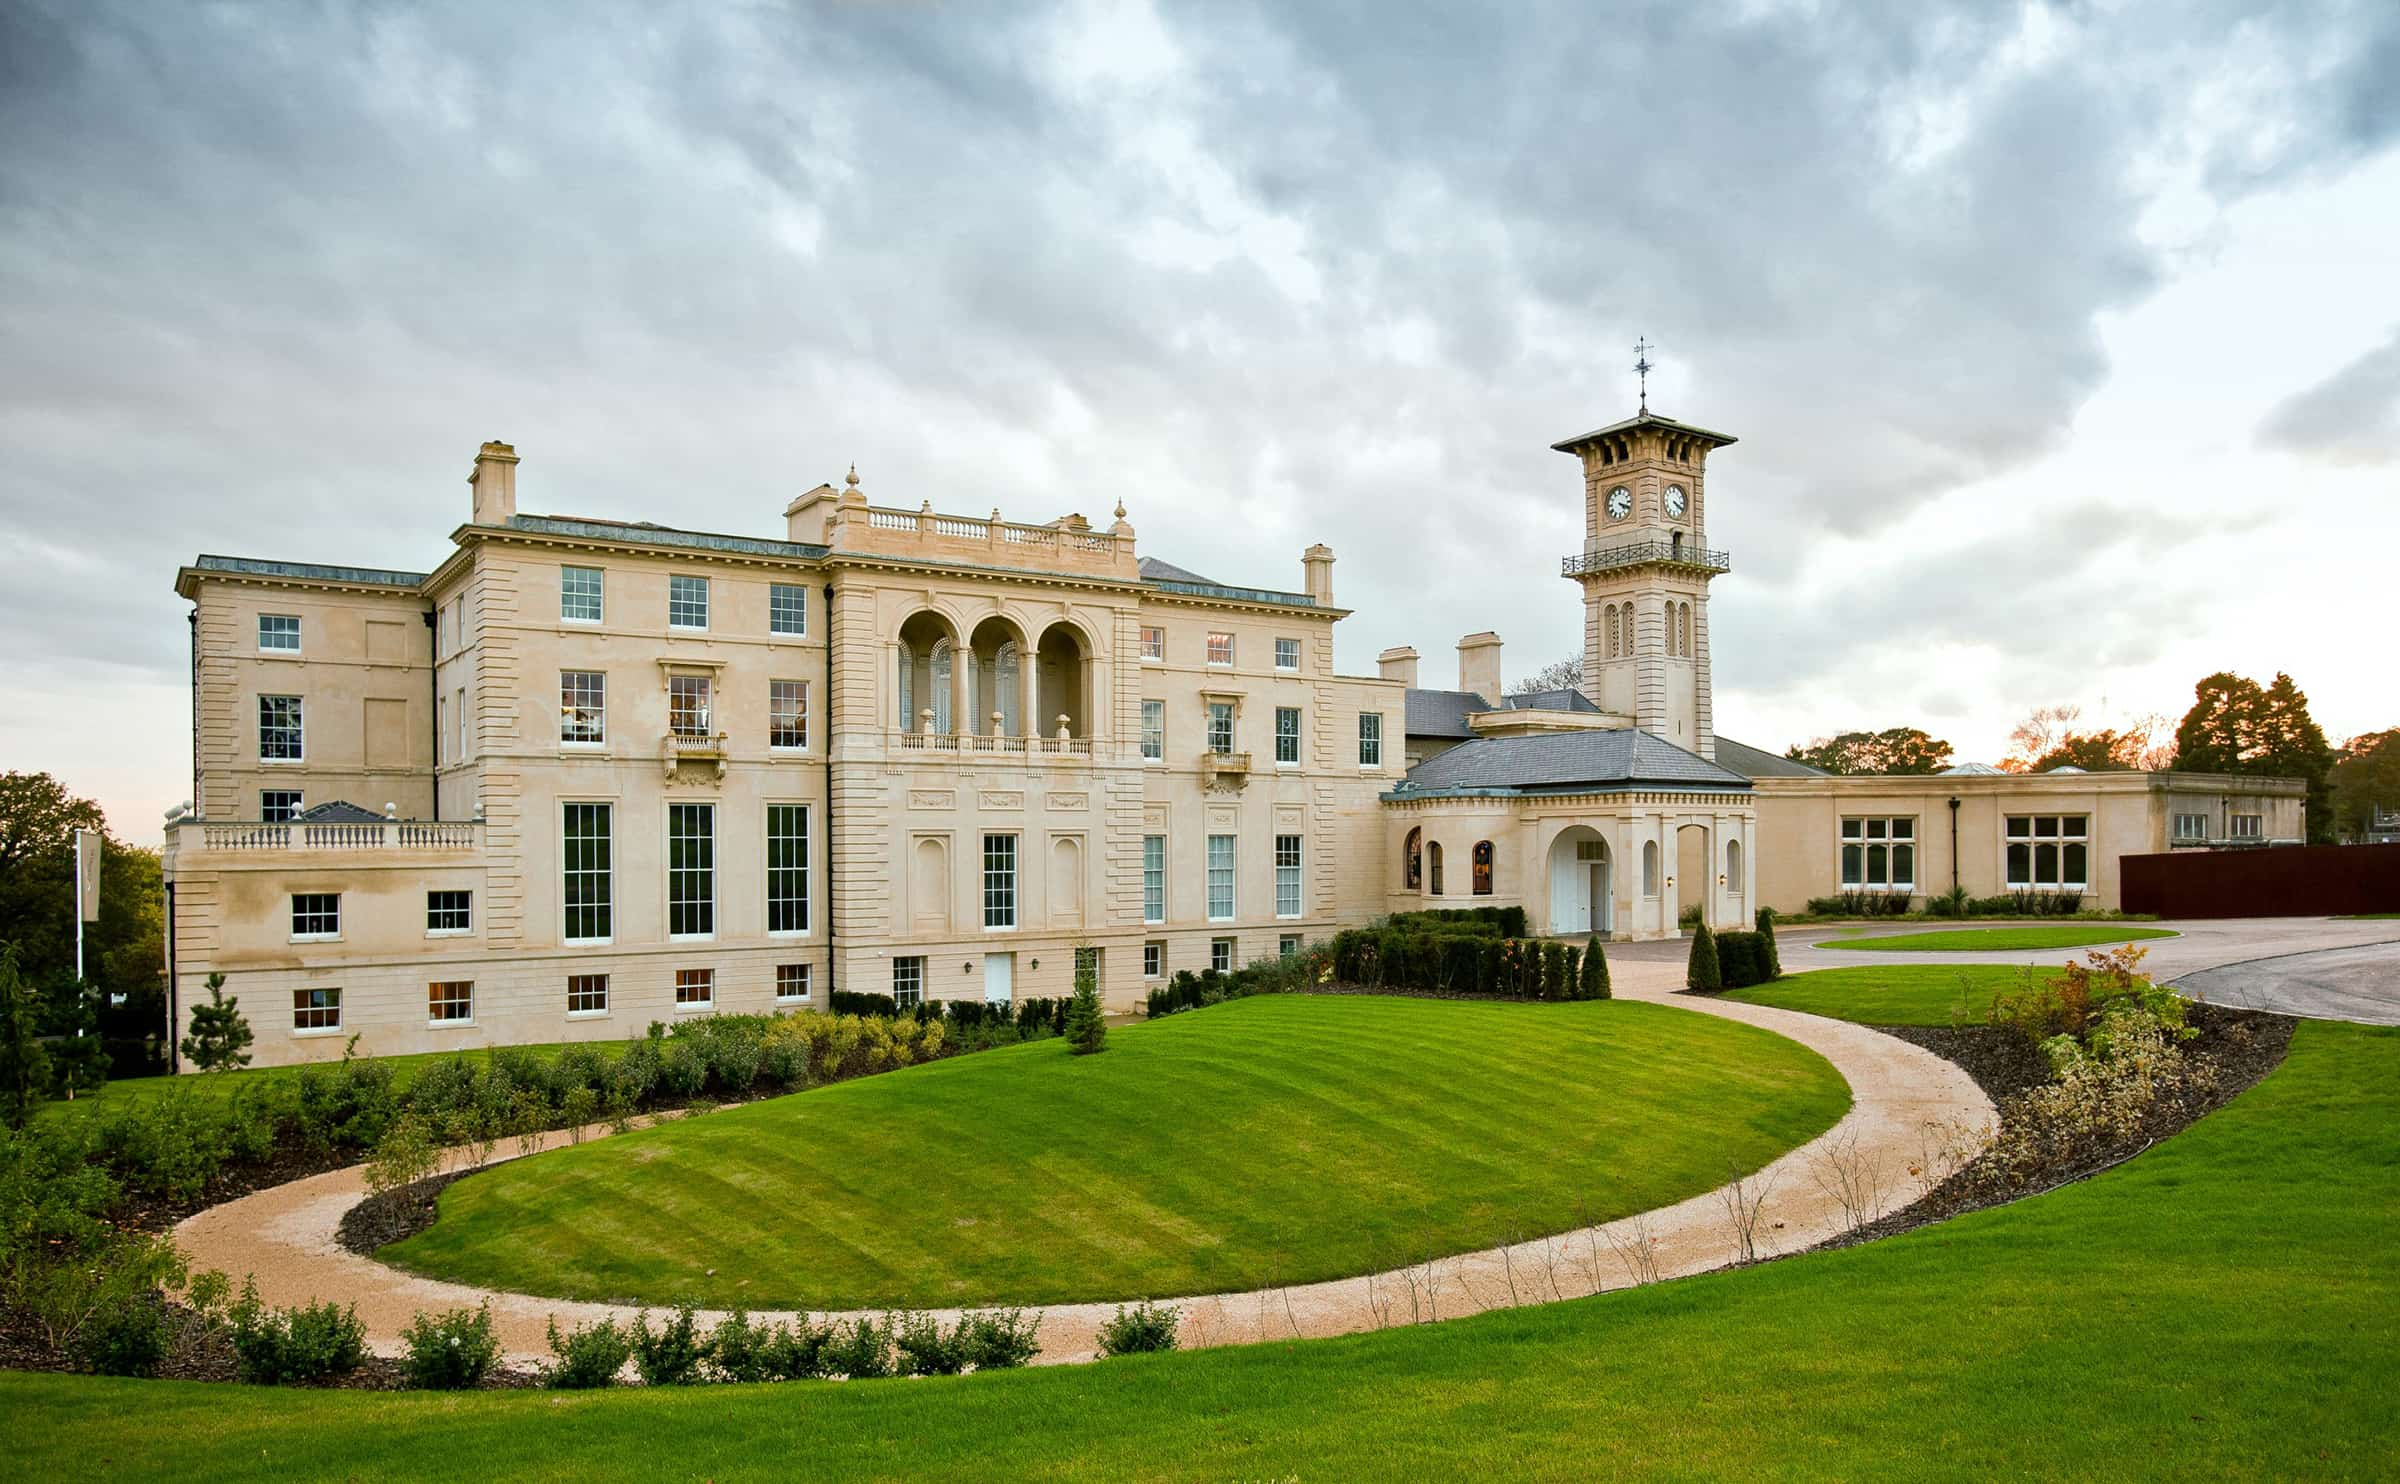 Bentley Priory, Middlesex